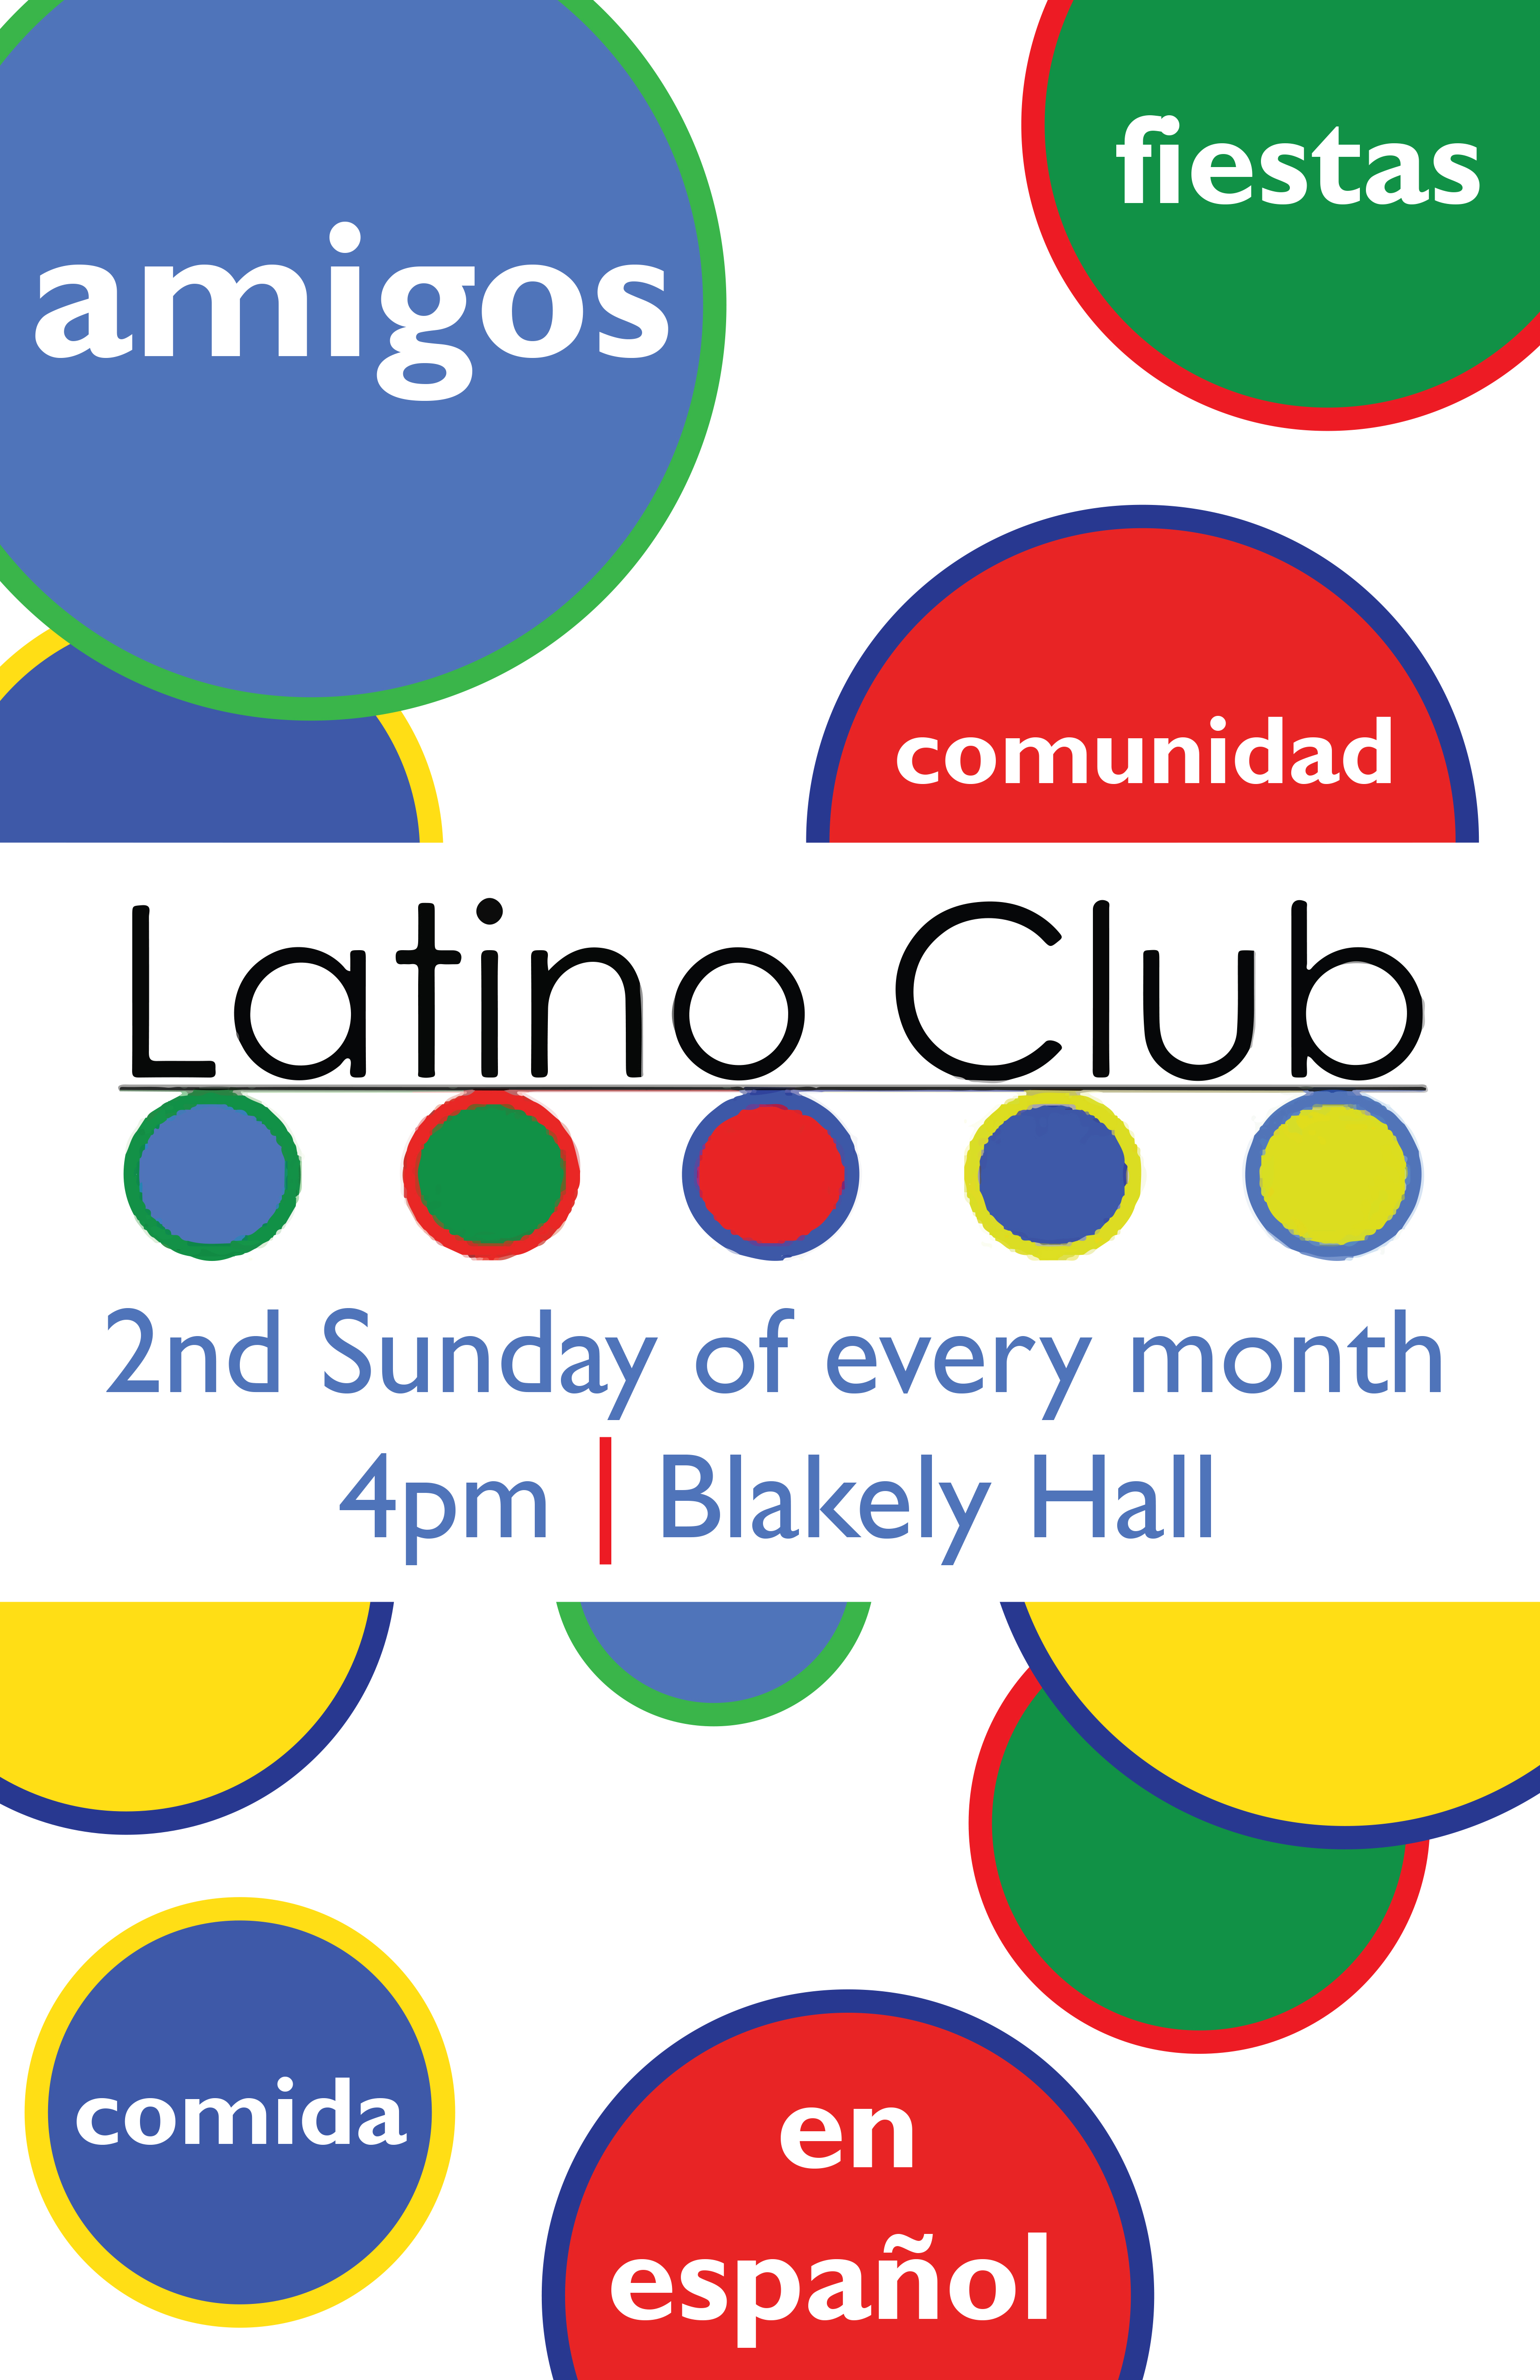 Latino Club Issaquah Highlands